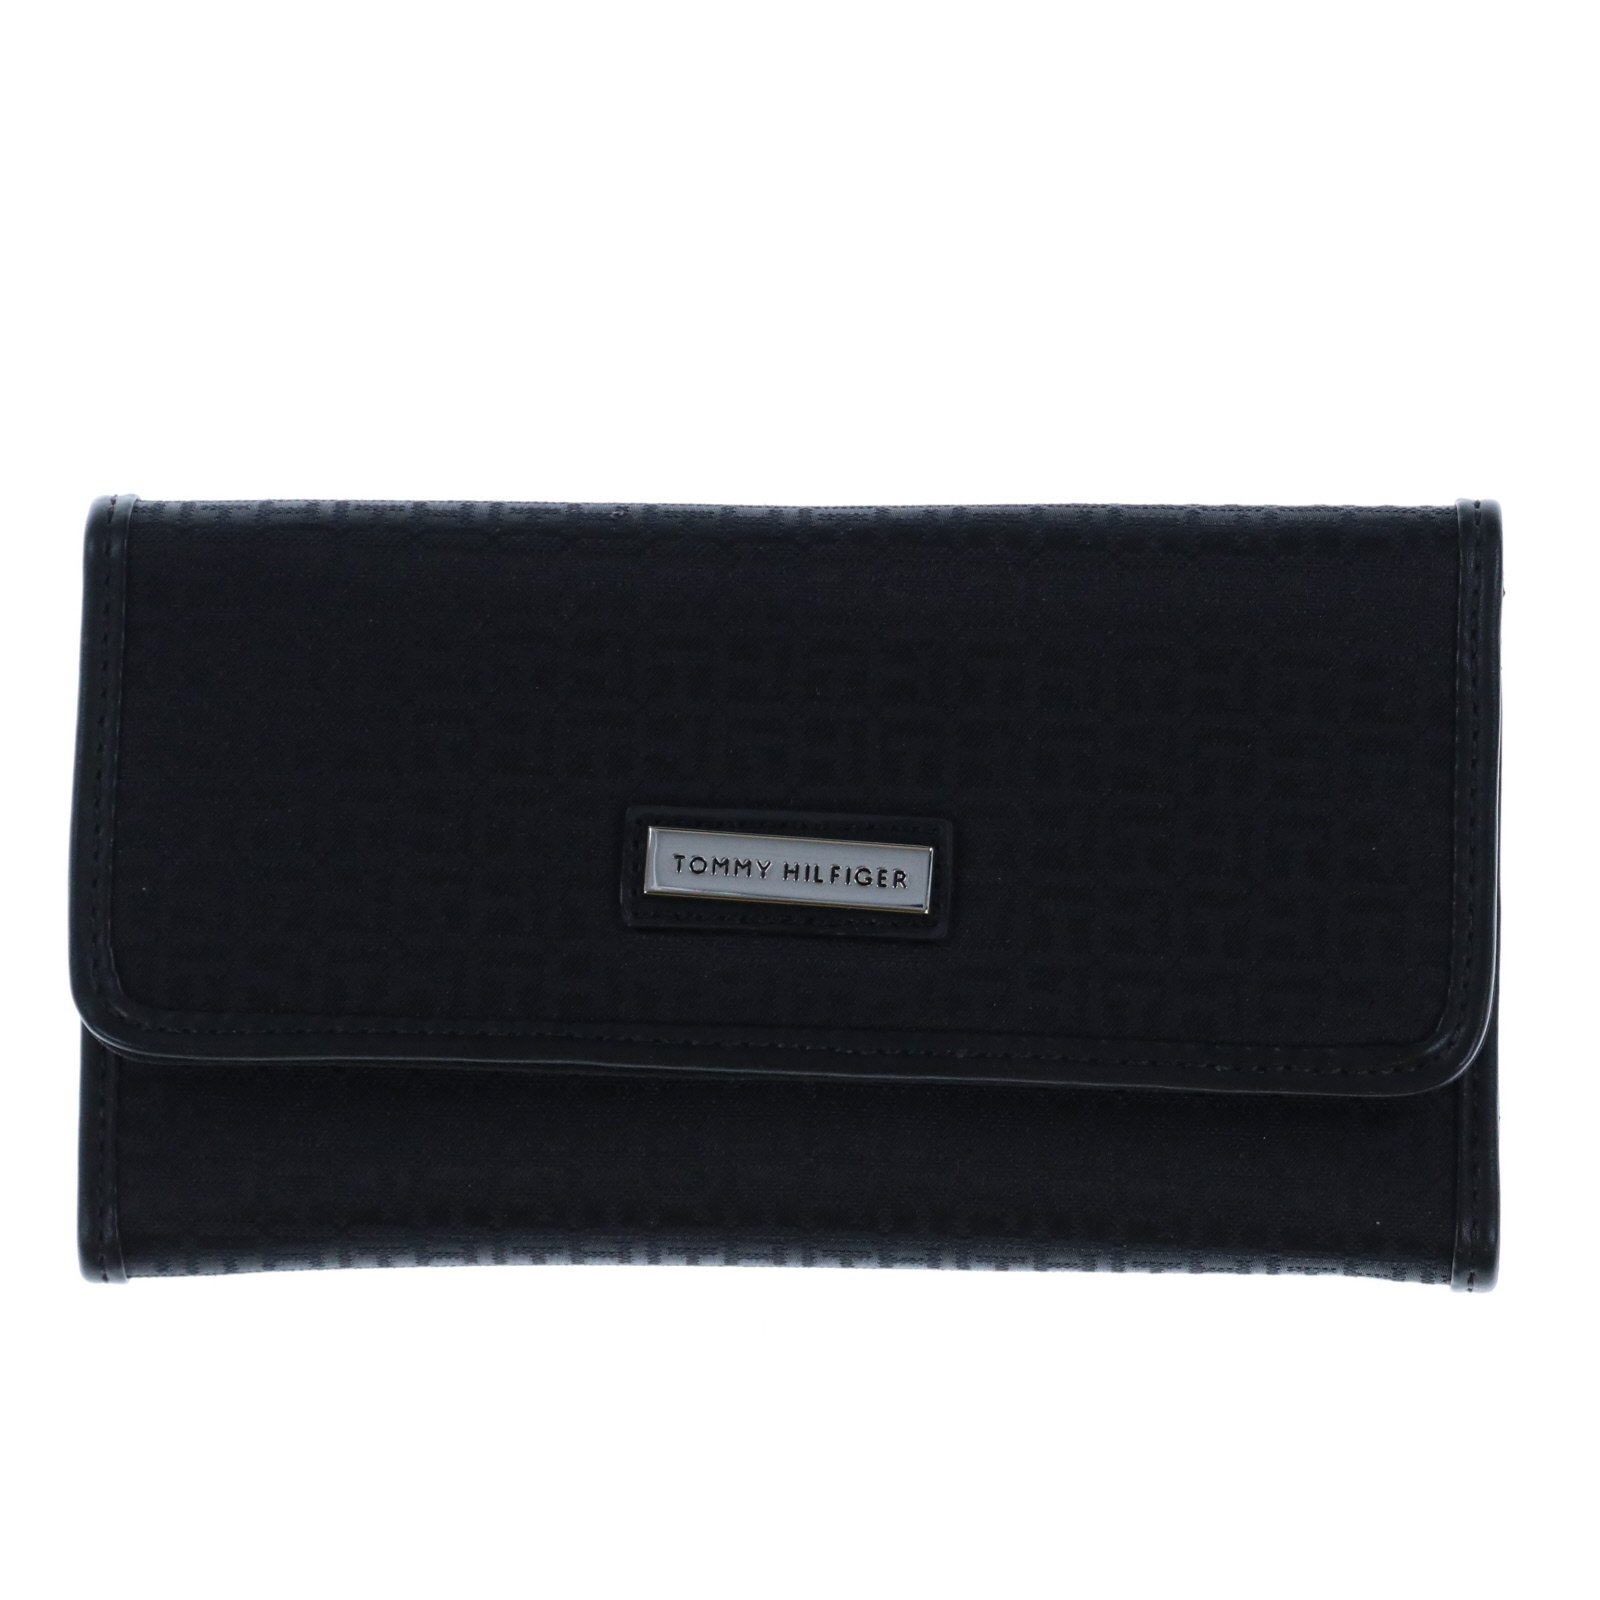 New Tommy Hilfiger TH Logo Wallet & Checkbook Cover 2 Piece Black Duplicate Flap by Tommy Hilfiger